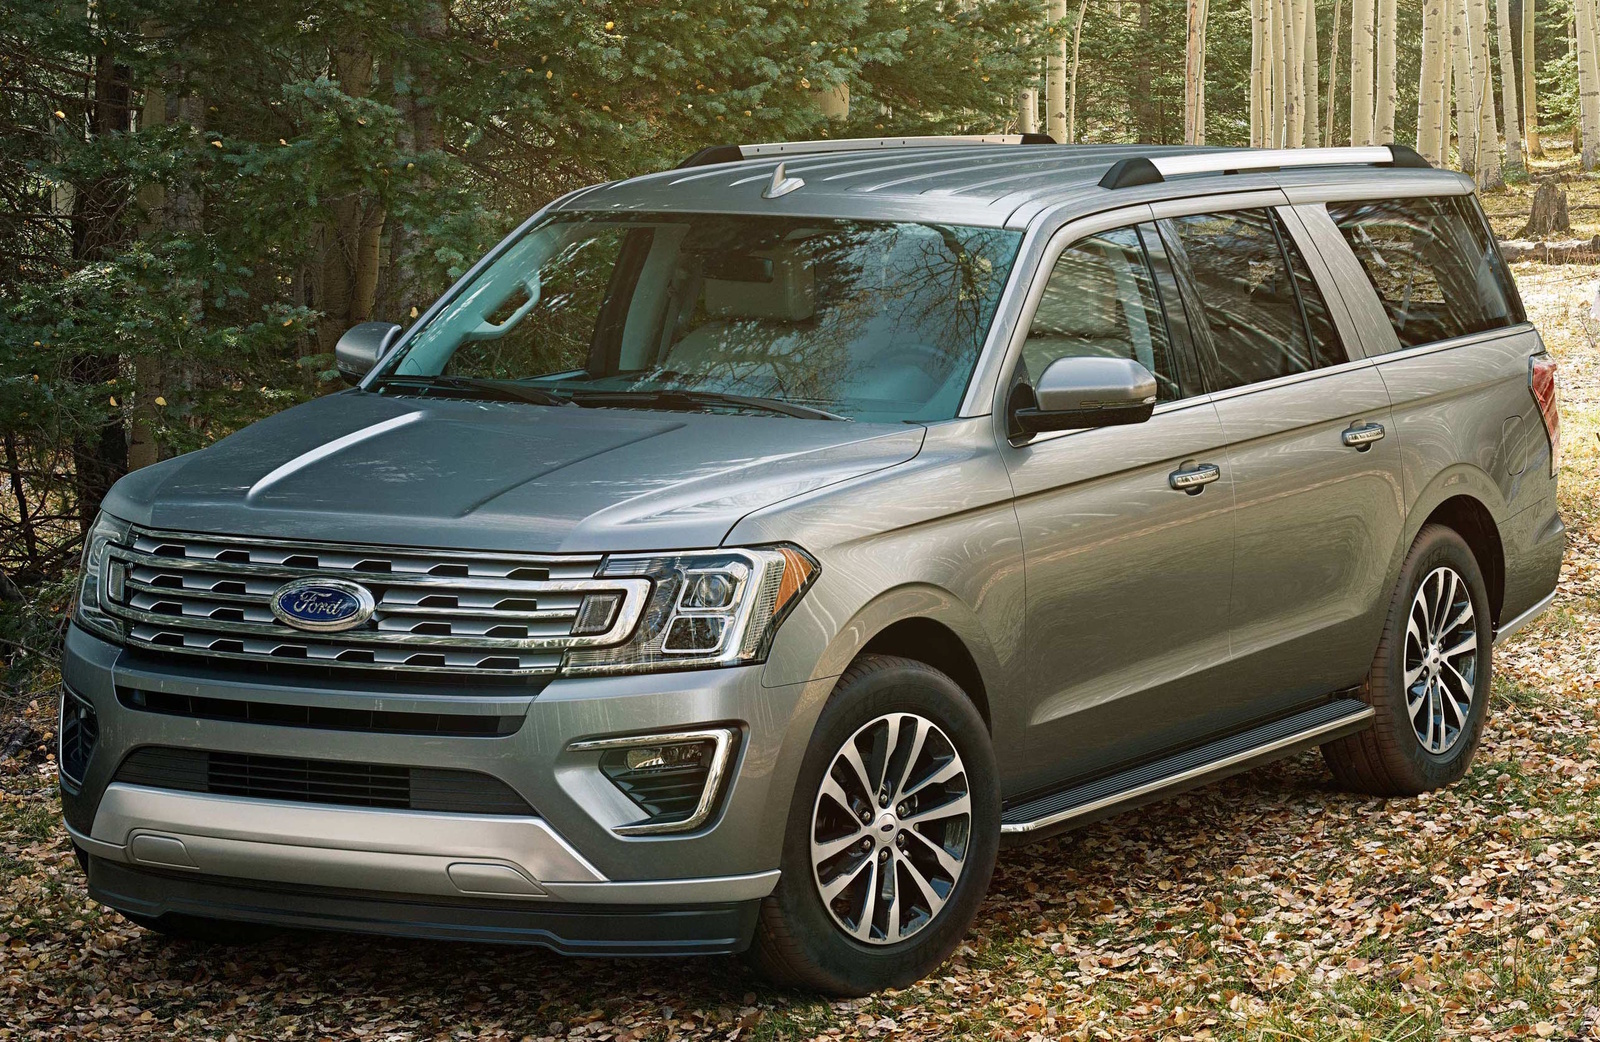 2018 ford expedition front quarter view exterior manufacturer - Ford Explorer 2018